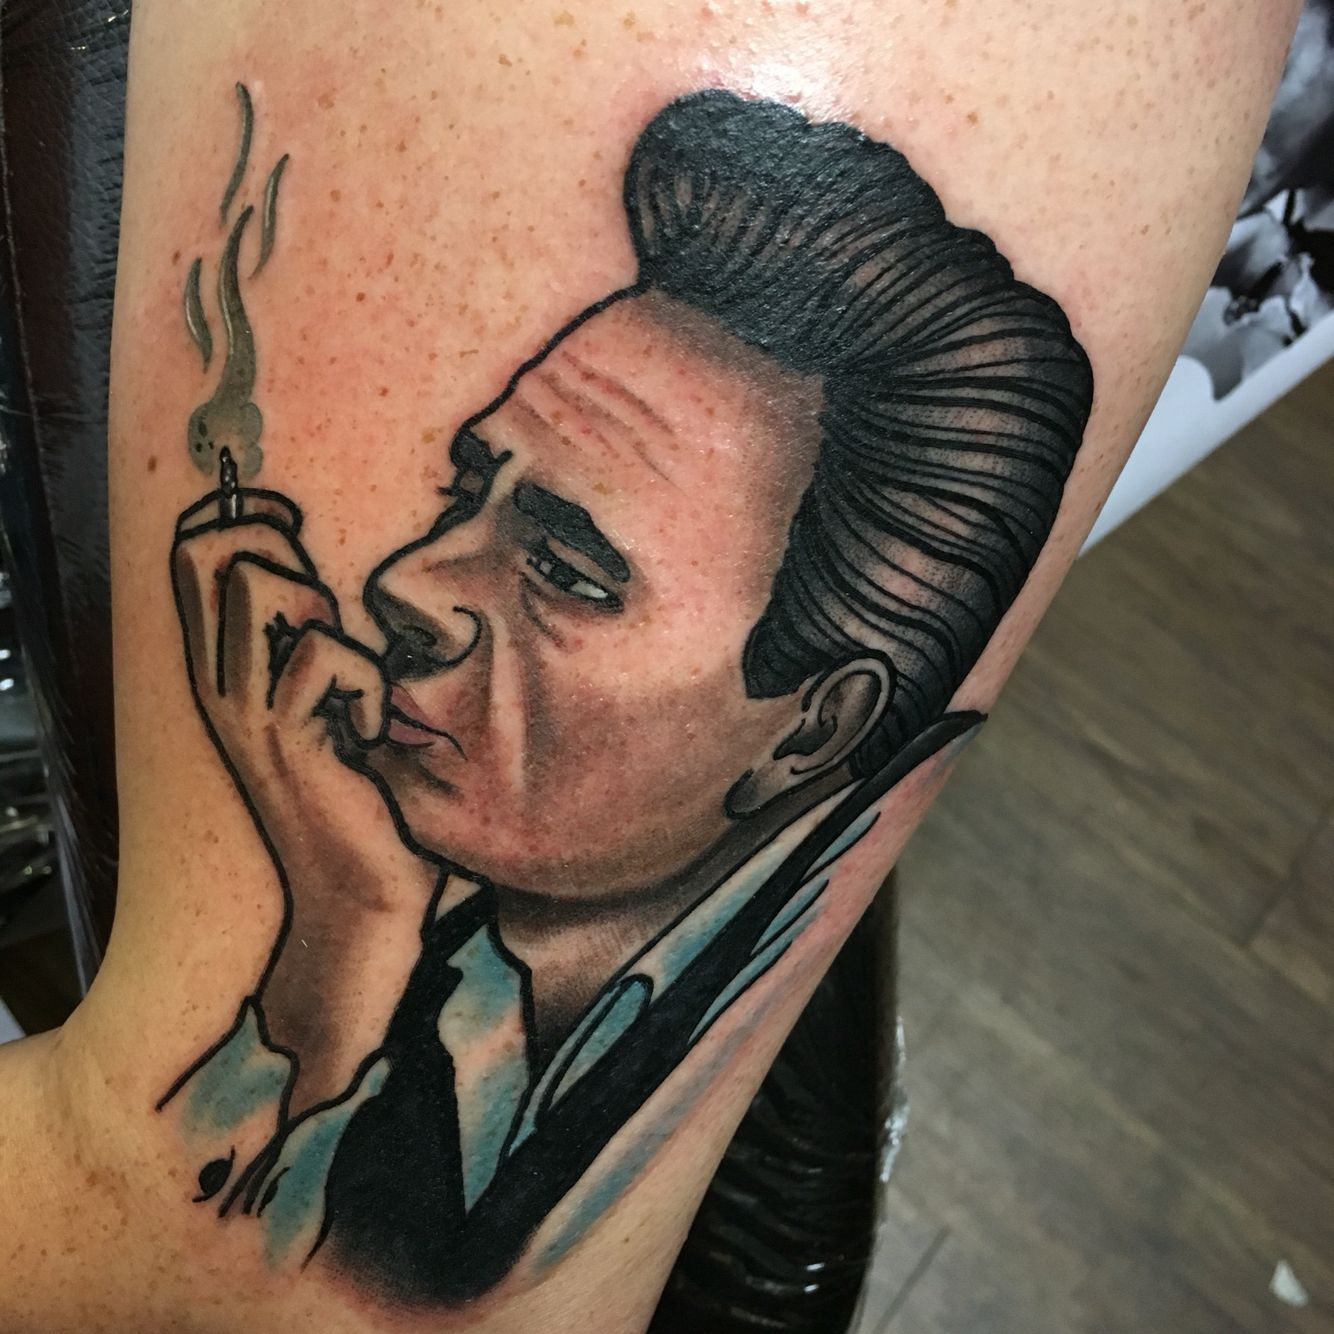 Johnny Cash Tattoo Chris O Toole Out Of Depiction Tattoo Gallery